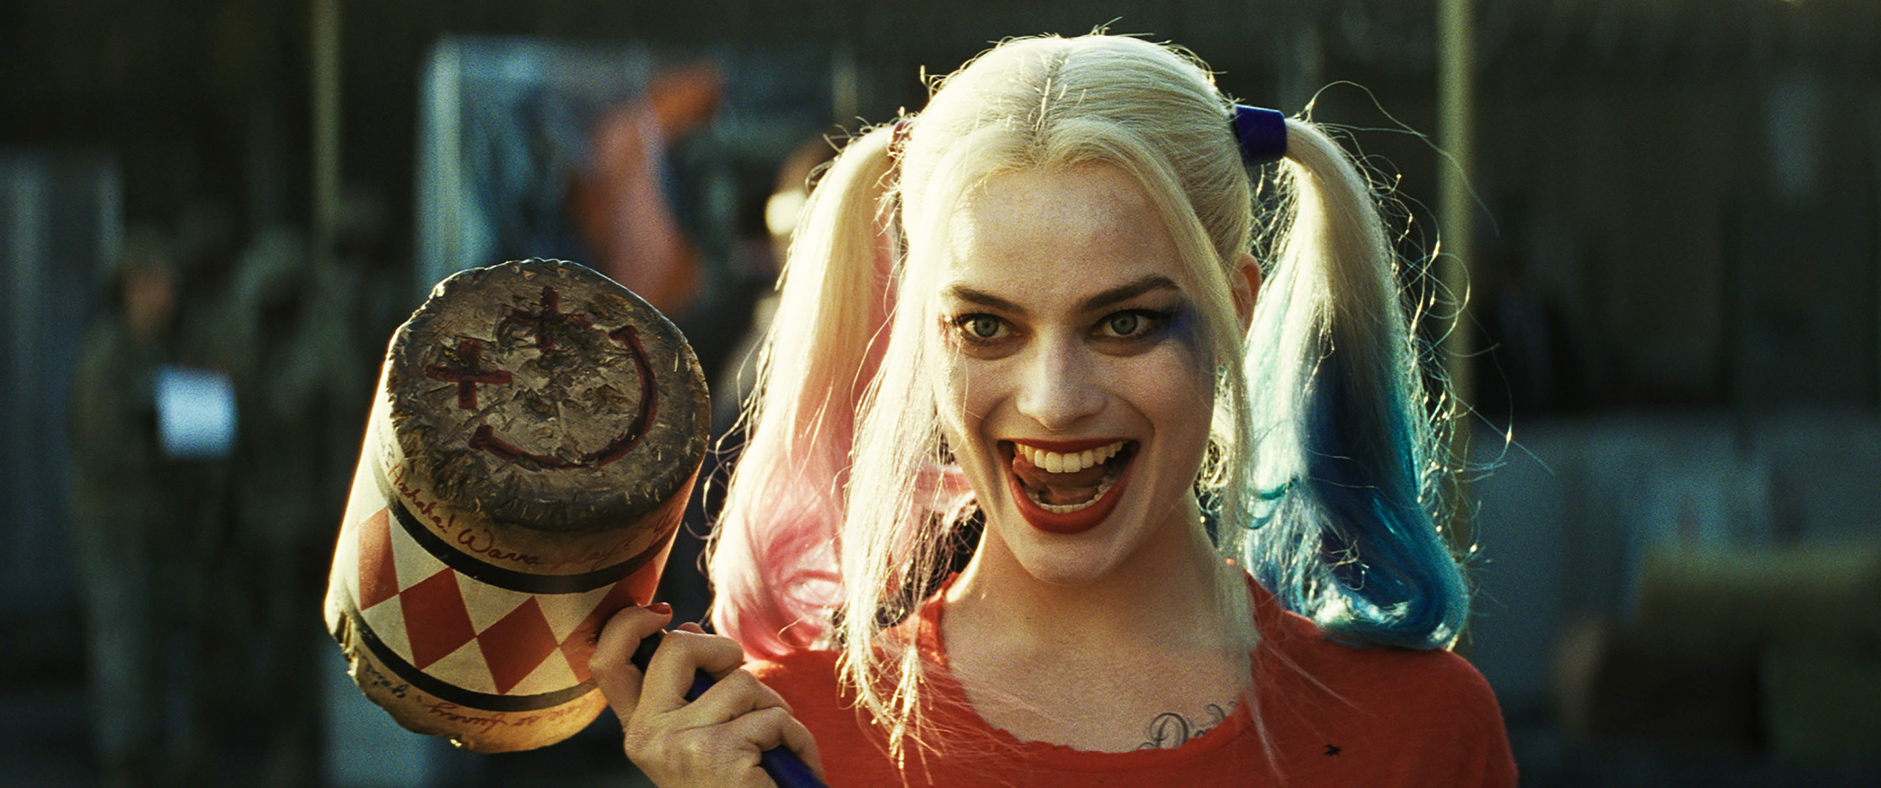 Margot Robbie Suicide Squad Harley Quinn Birds of Prey